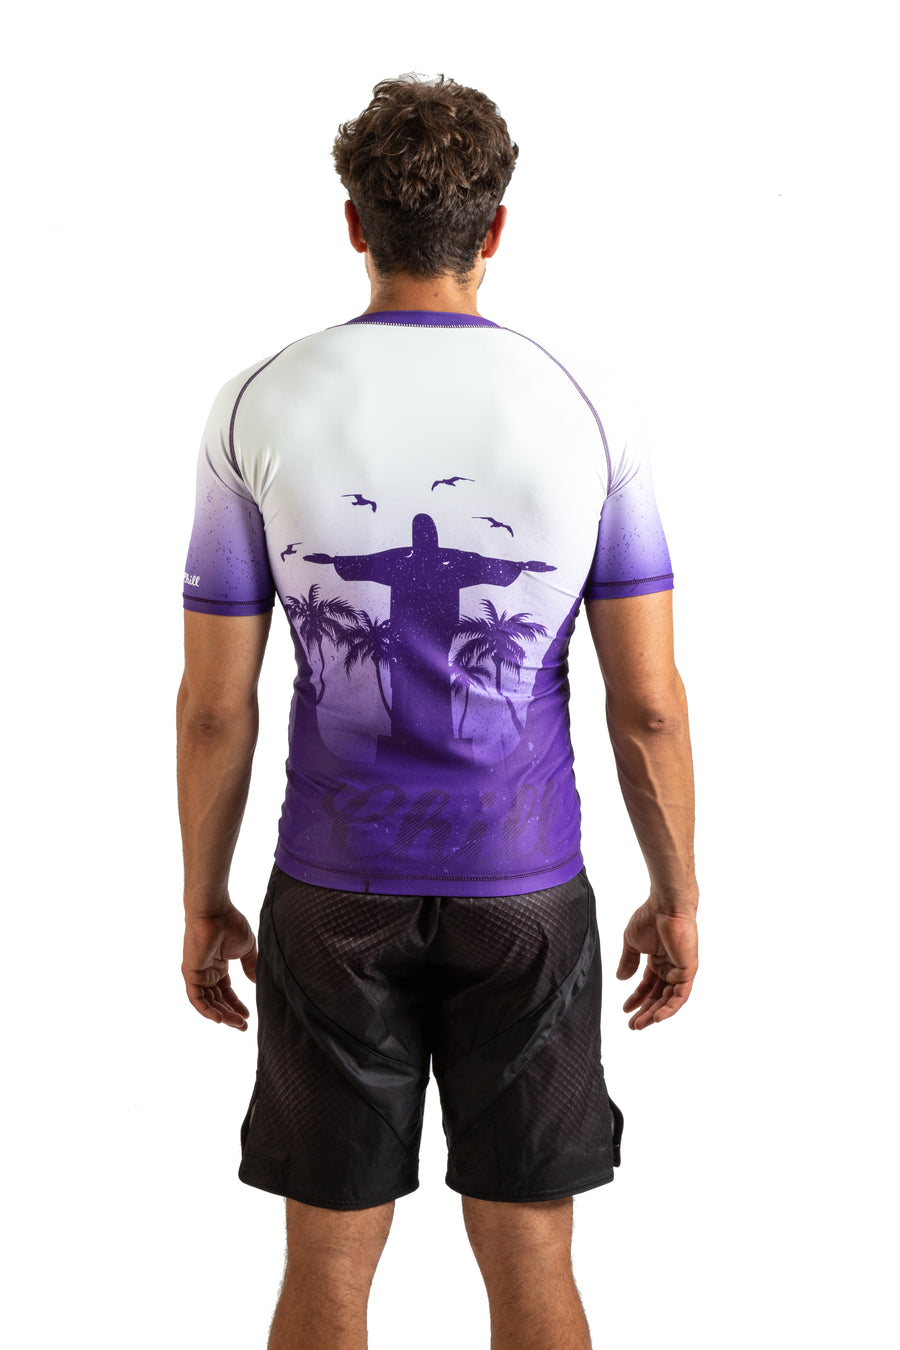 Choke&Chill Competition Rashguard - Purple - Short Sleeve